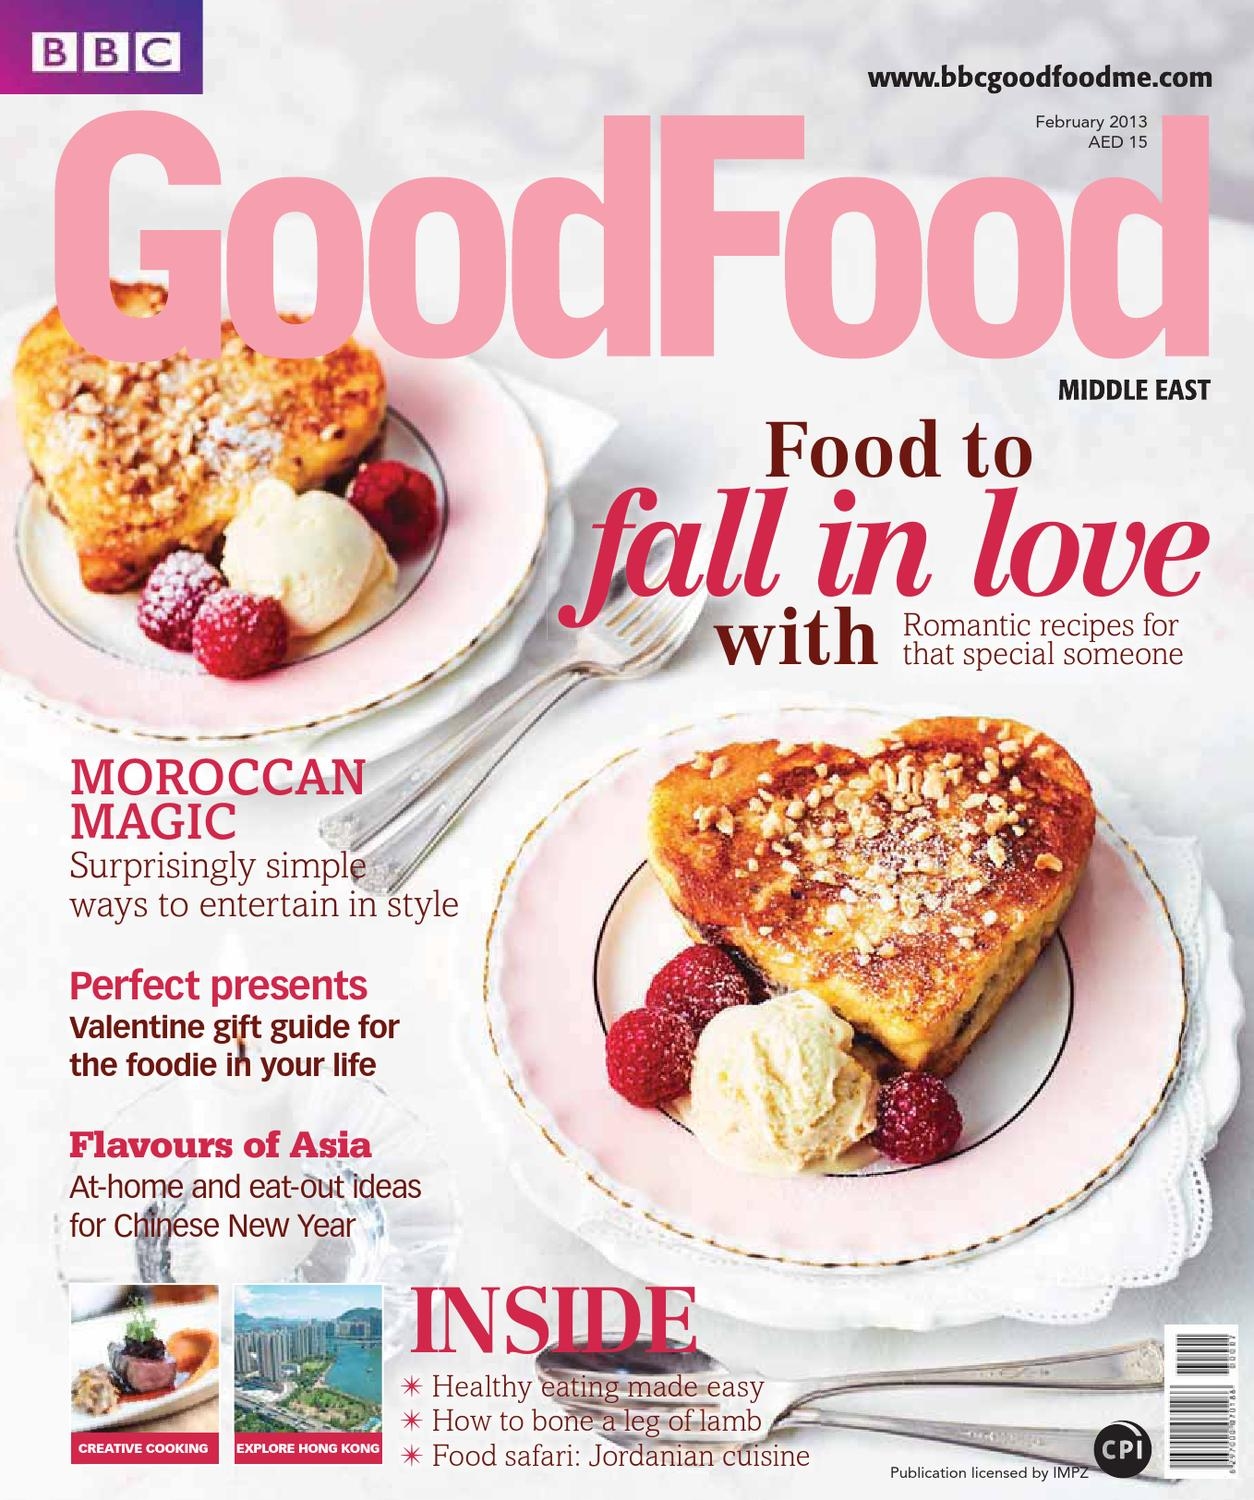 Bbc good food middle east magazine february 2013 by bbc good food bbc good food middle east magazine february 2013 by bbc good food me issuu forumfinder Image collections